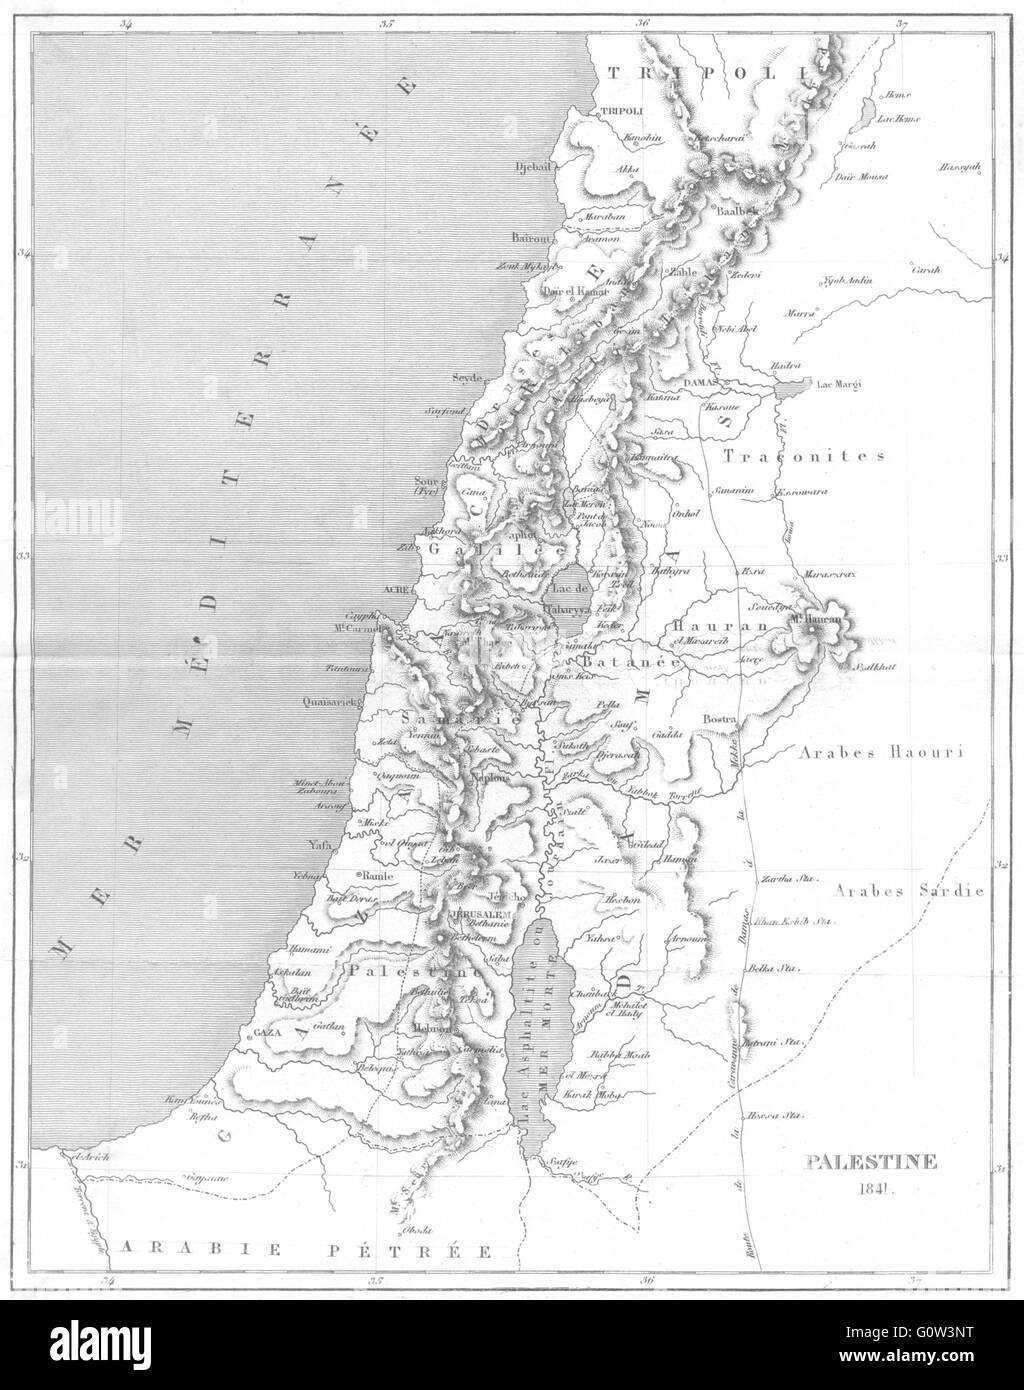 ISRAEL: Asie: Palestine 1841, 1875 antique map - Stock Image